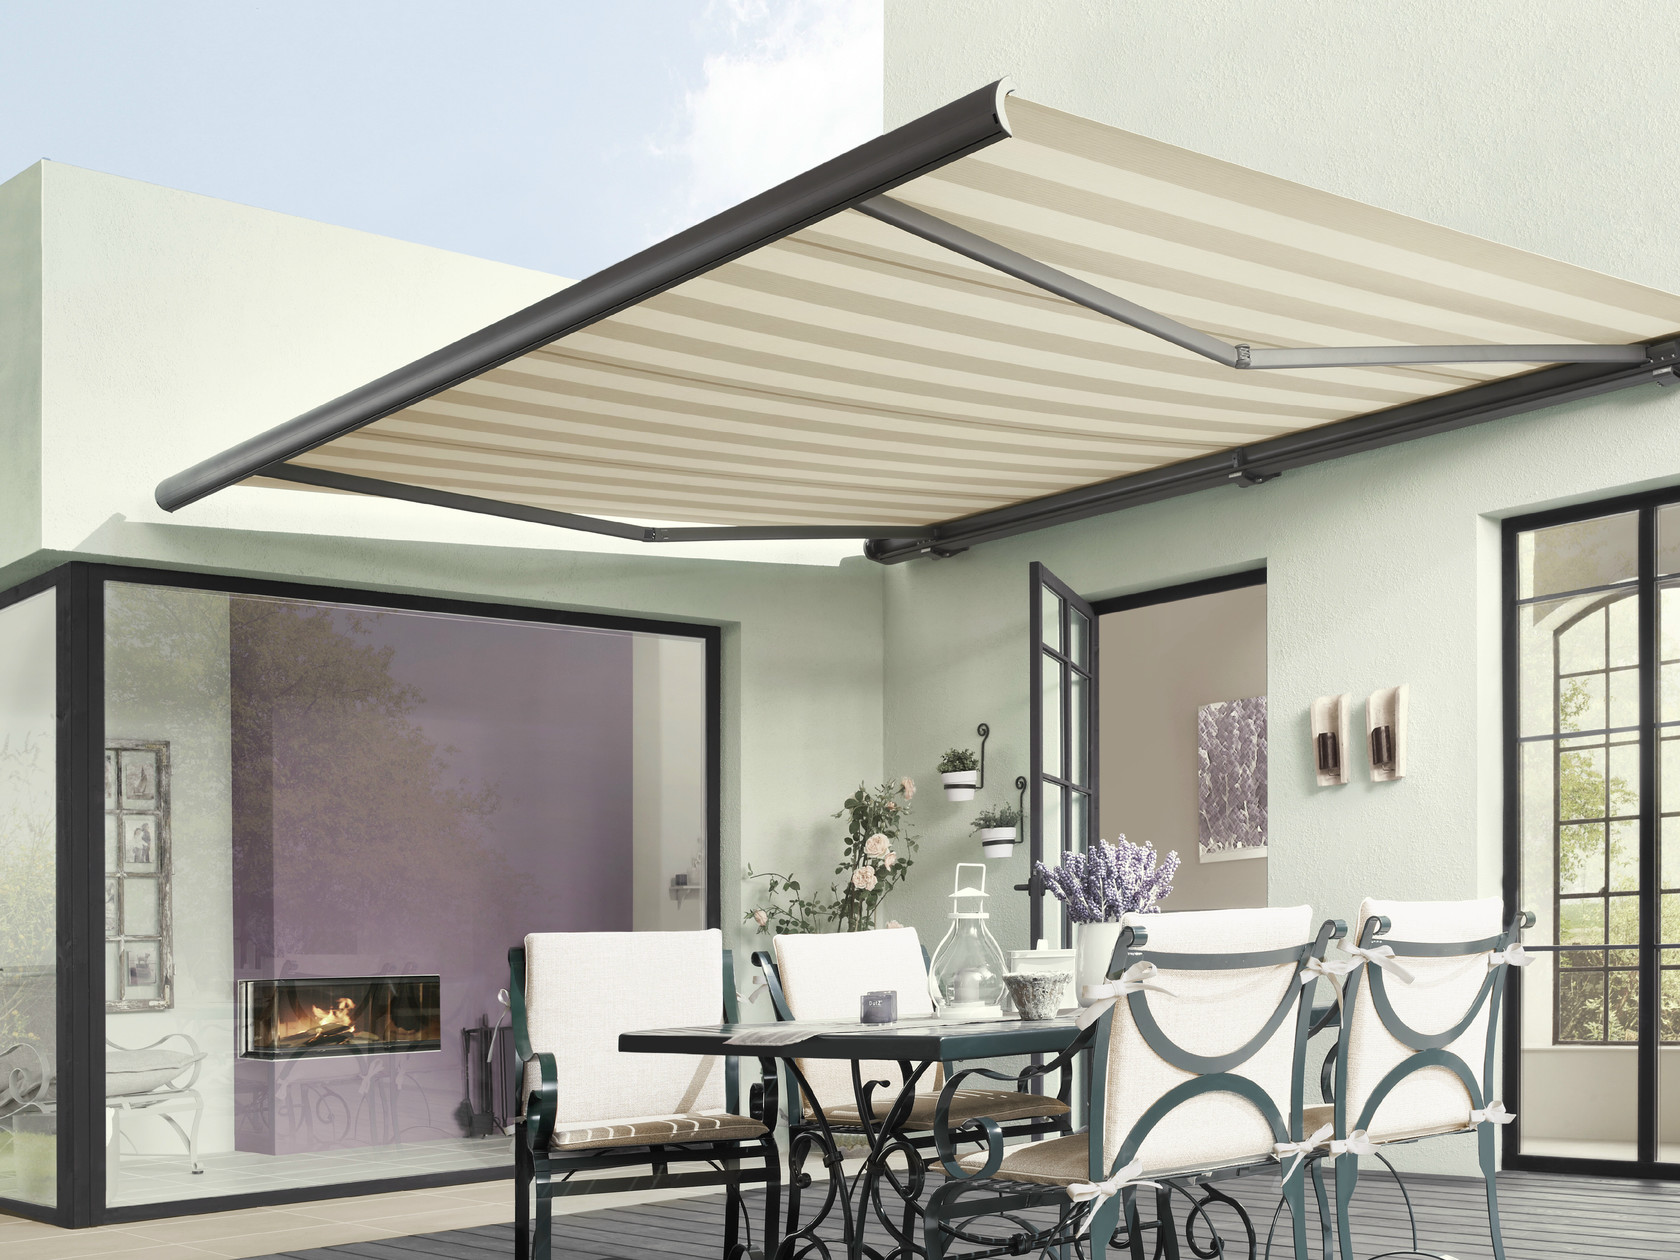 Remarkable Primacy of Adding Awnings to Your Home's Exterior – How